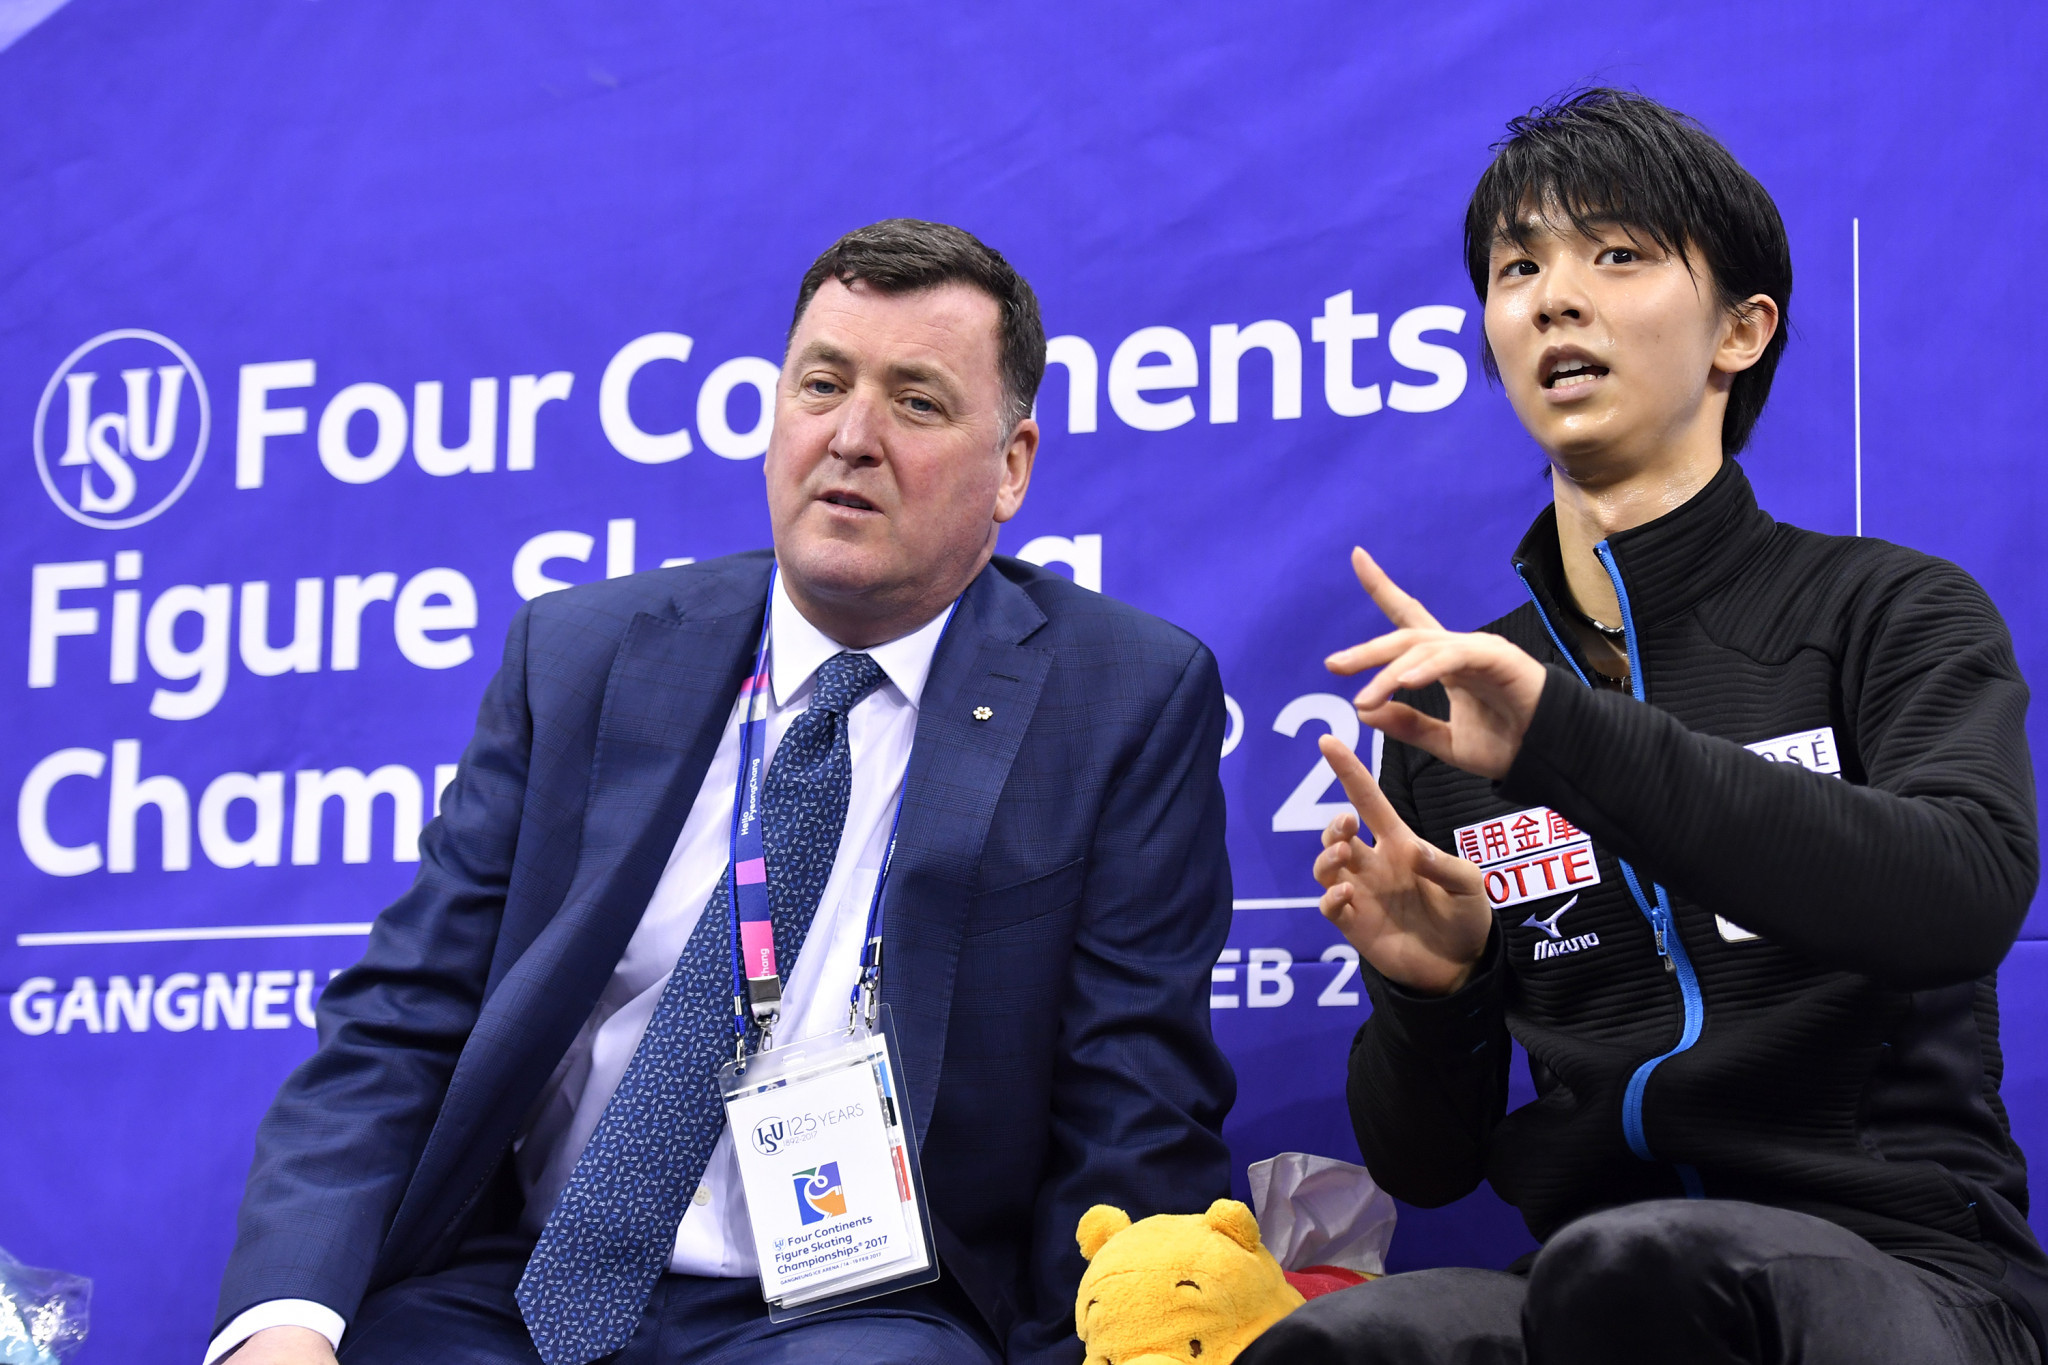 One of the modules currently on the ISU e-learning platform is advanced skating techniques with Olympic medallist Brian Orser, who has coached South Korea's Yuna Kim and Japan's Yuzuru Hanyu to gold medals ©Getty Images